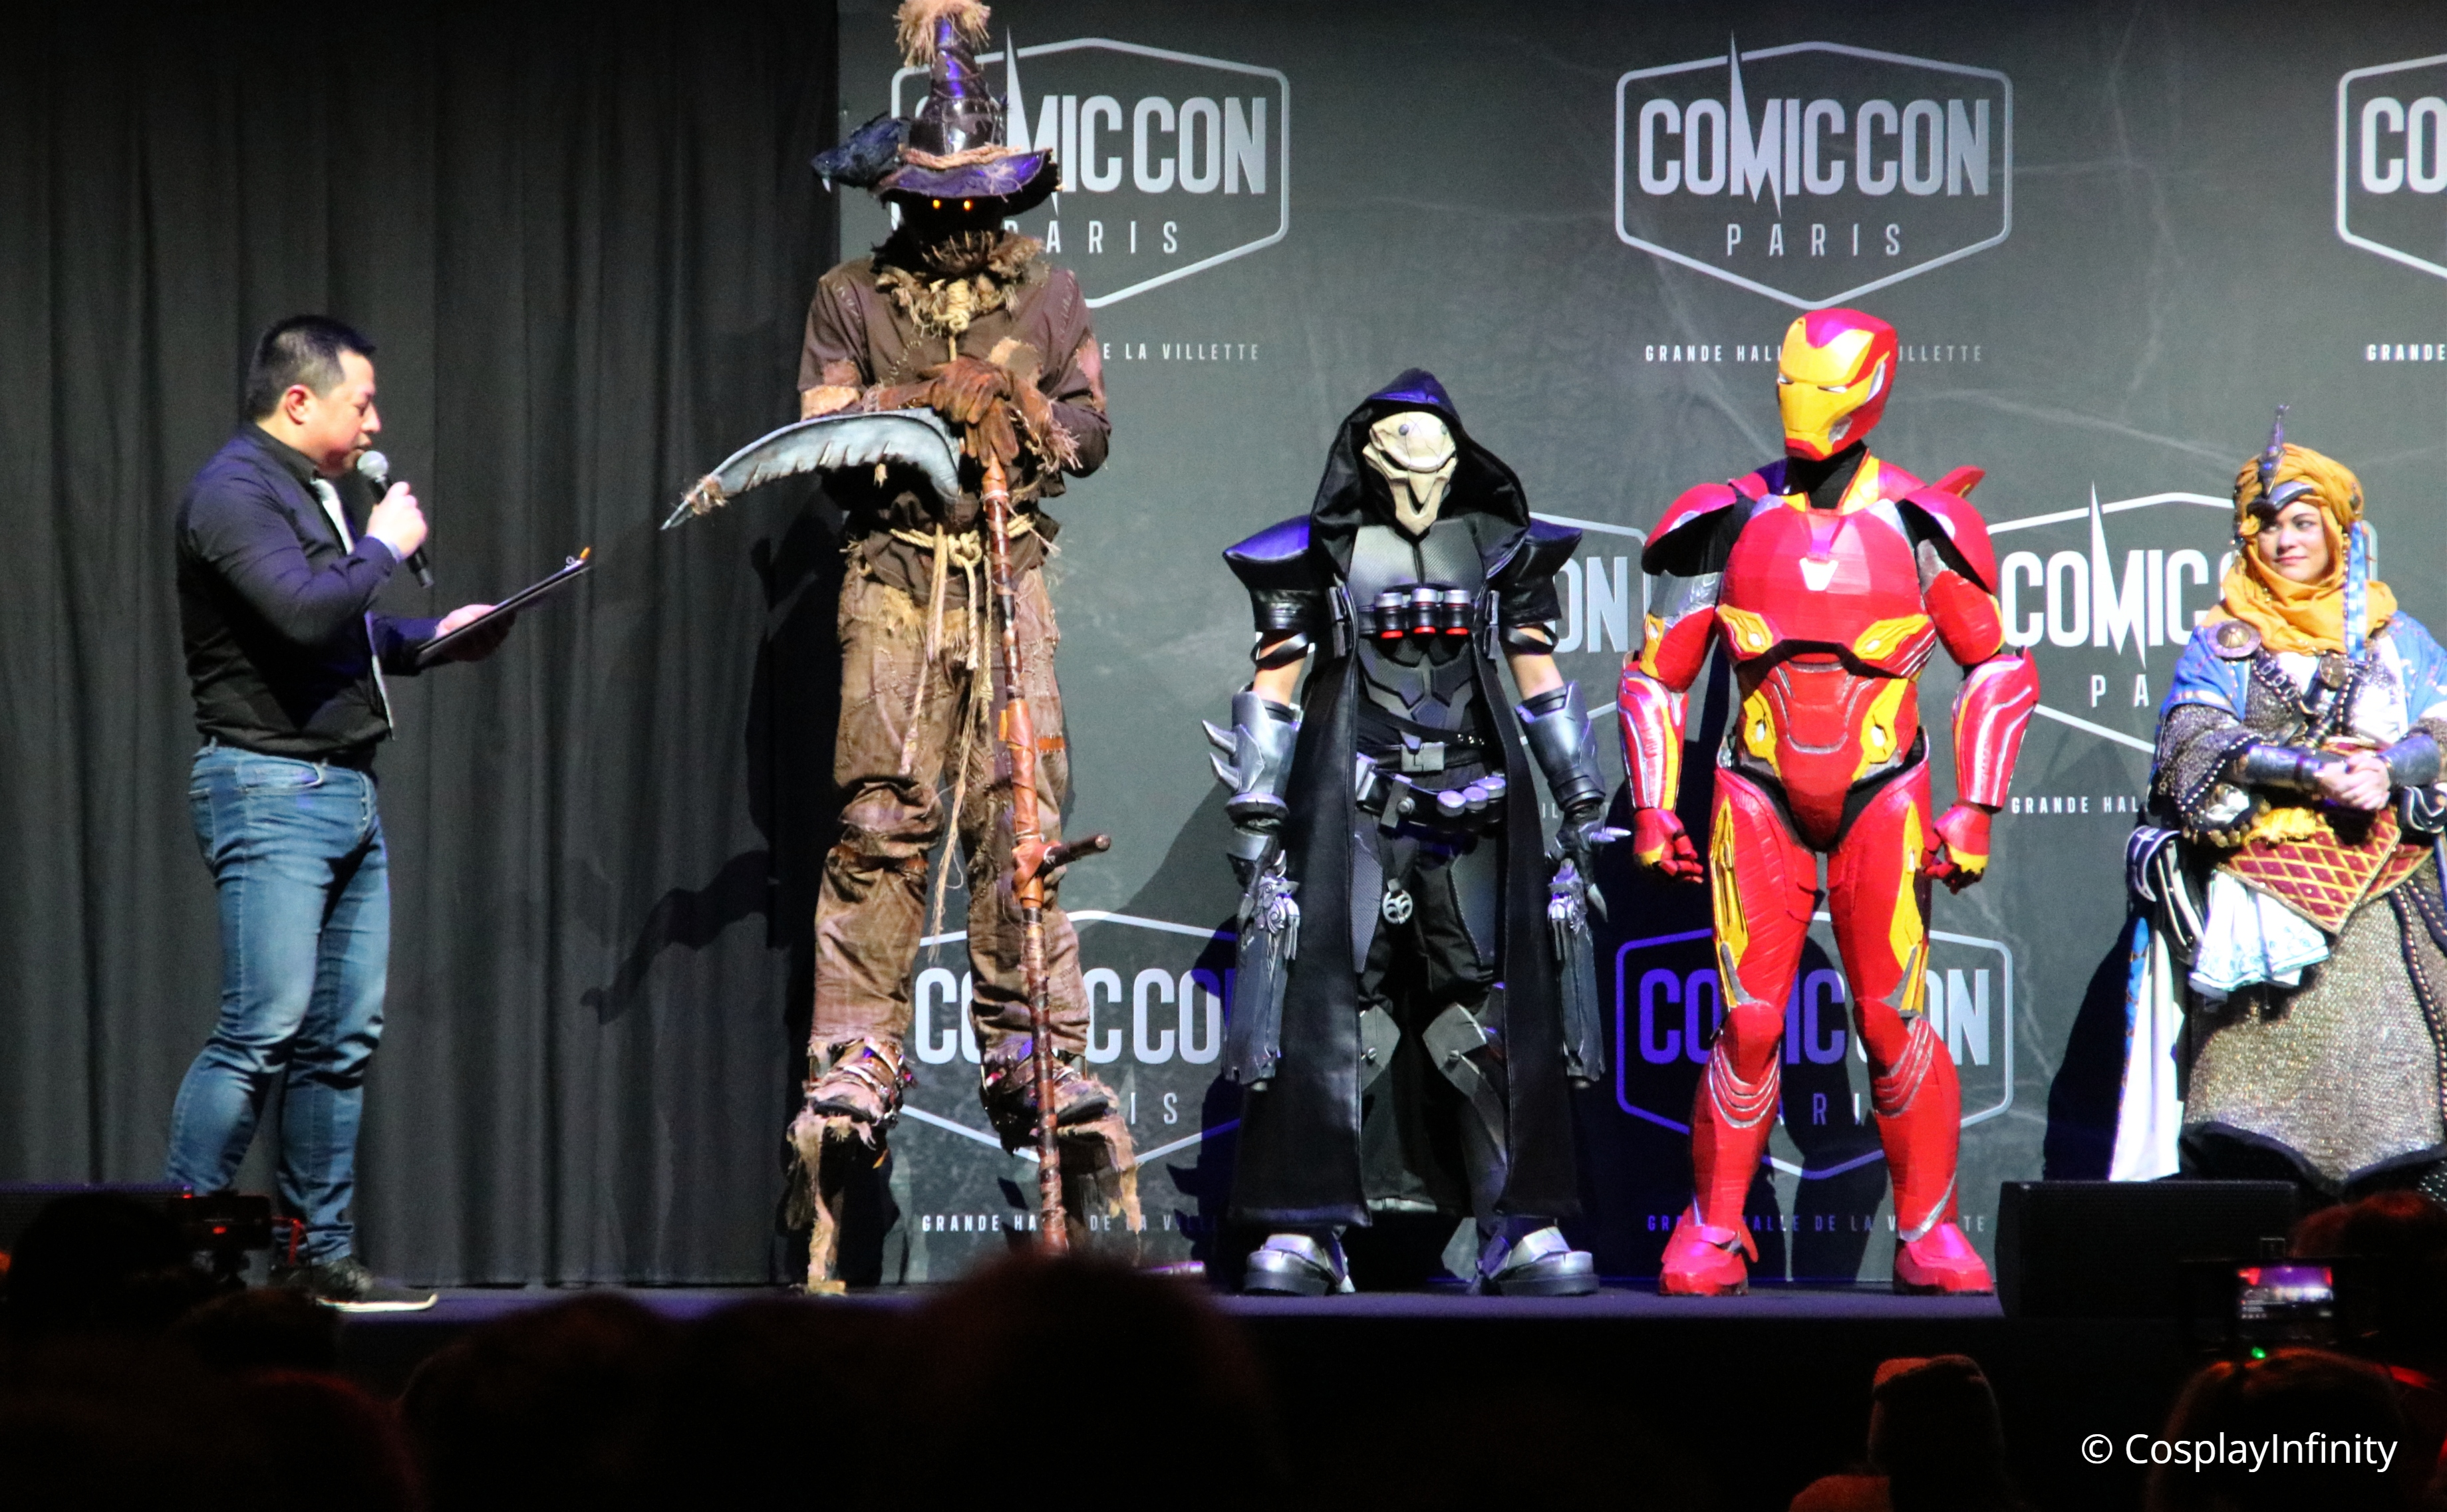 Video : French Championships of Cosplay by MCM – COMIC CON PARIS 2018